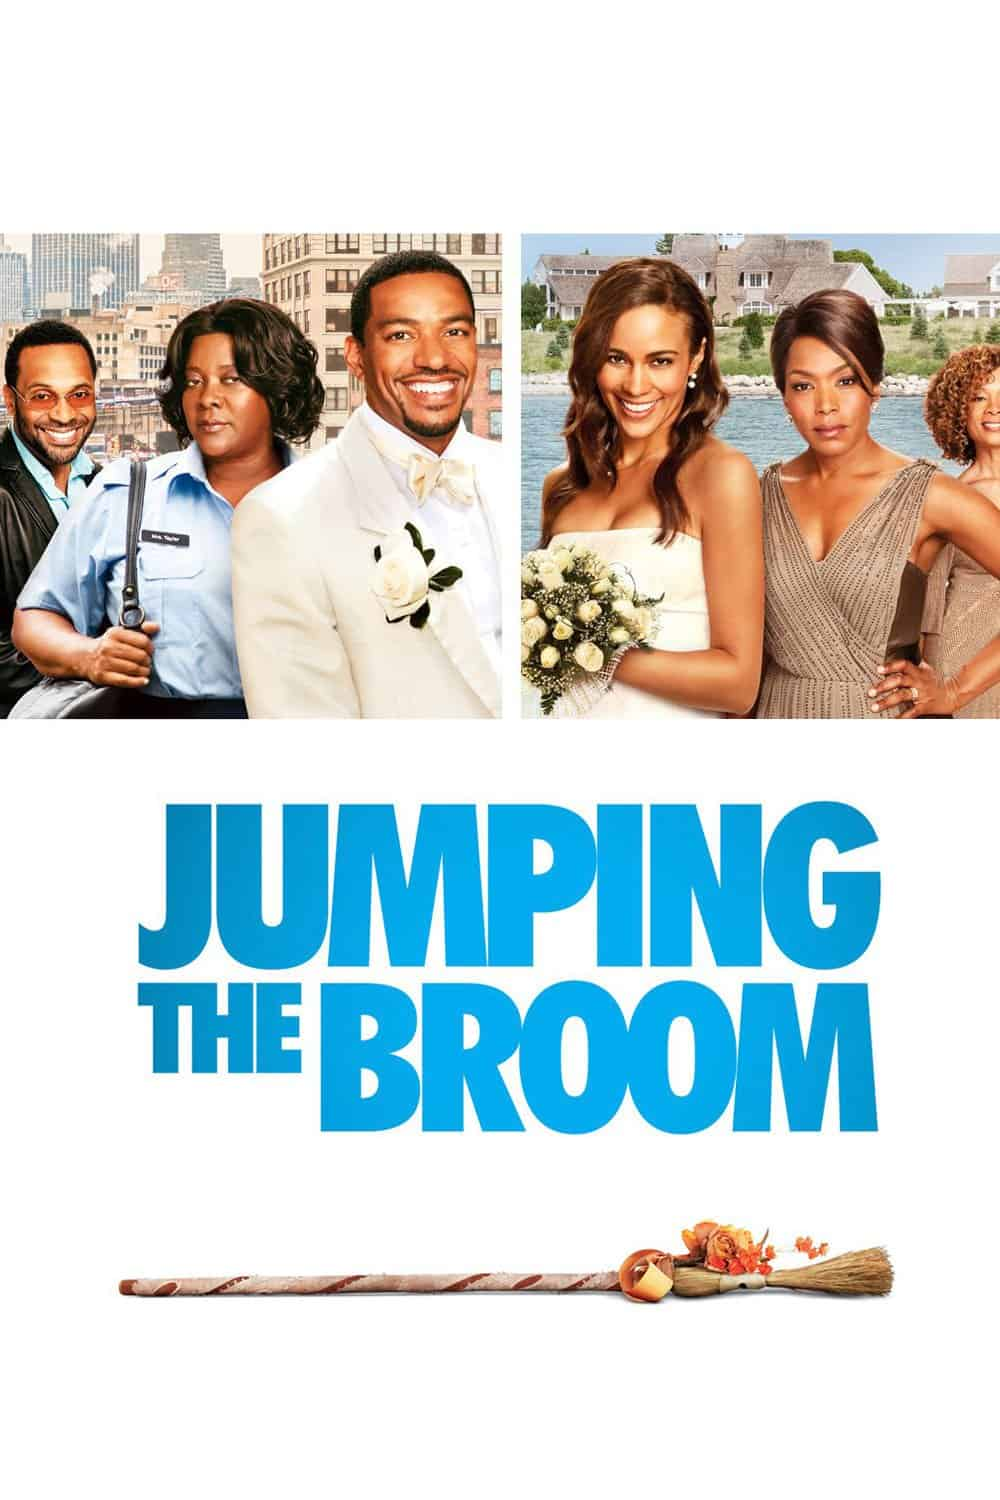 Jumping the Broom, 2011